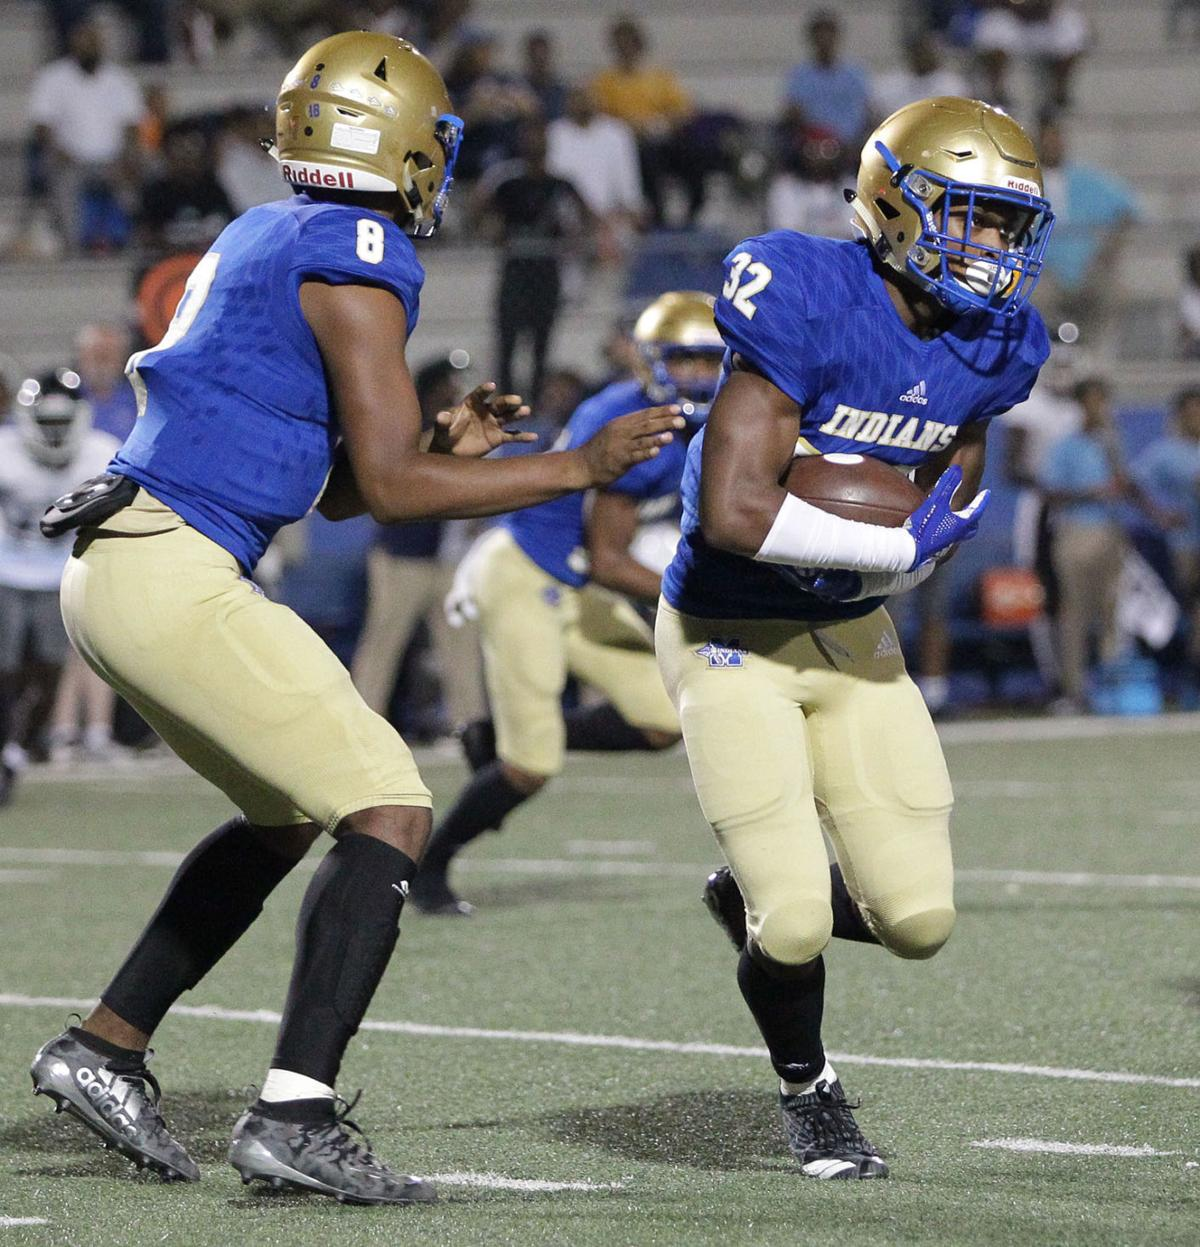 Cedar Grove at McEachern 1.jpg